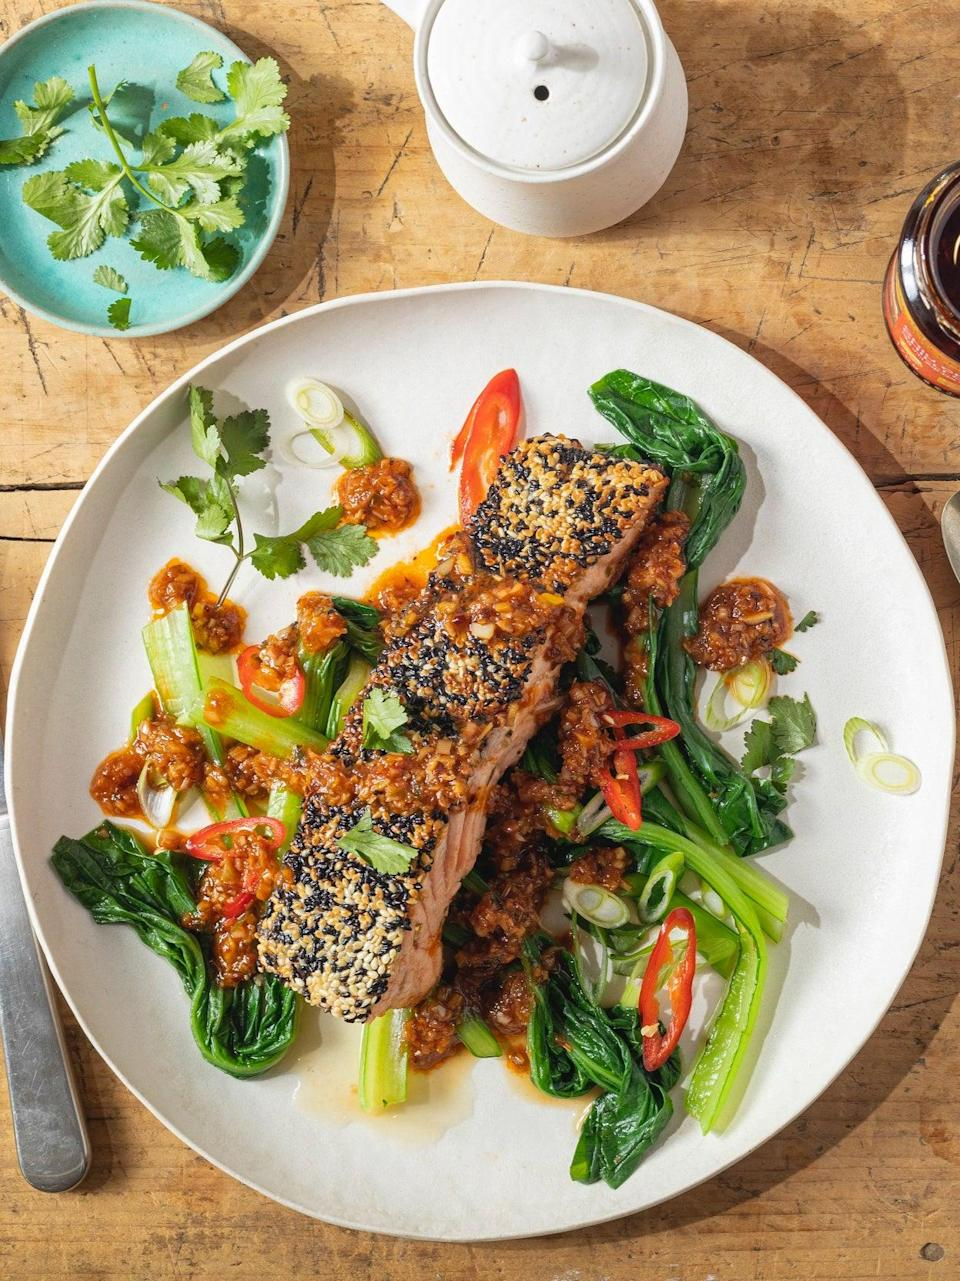 You can substitute the salmon for trout (Lee Kum Kee - Jeremy Pang)